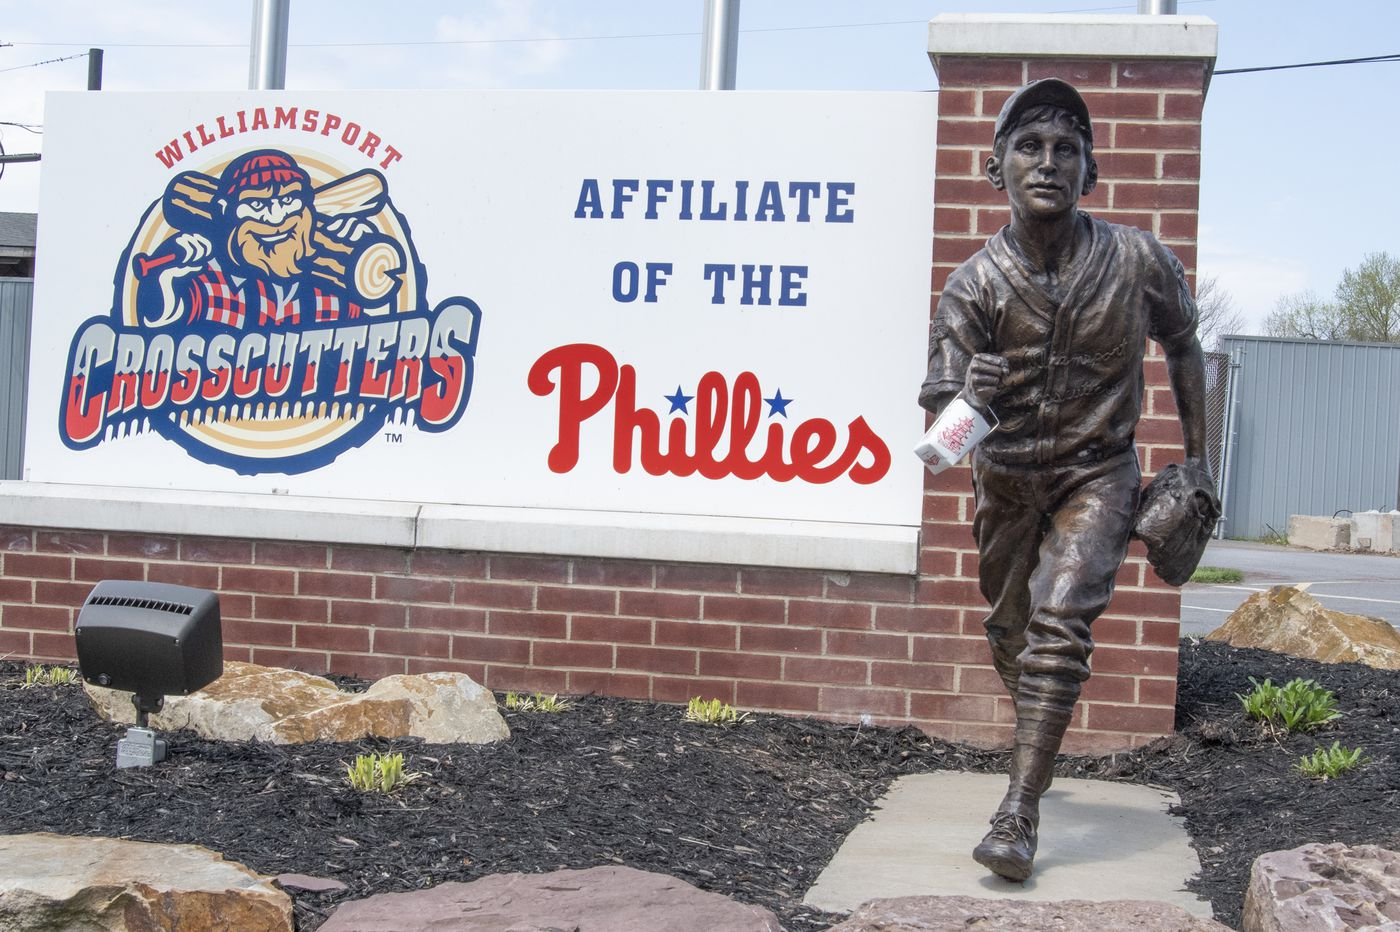 Williamsport will no longer be a Phillies minor-league team after its move to the MLB Draft League